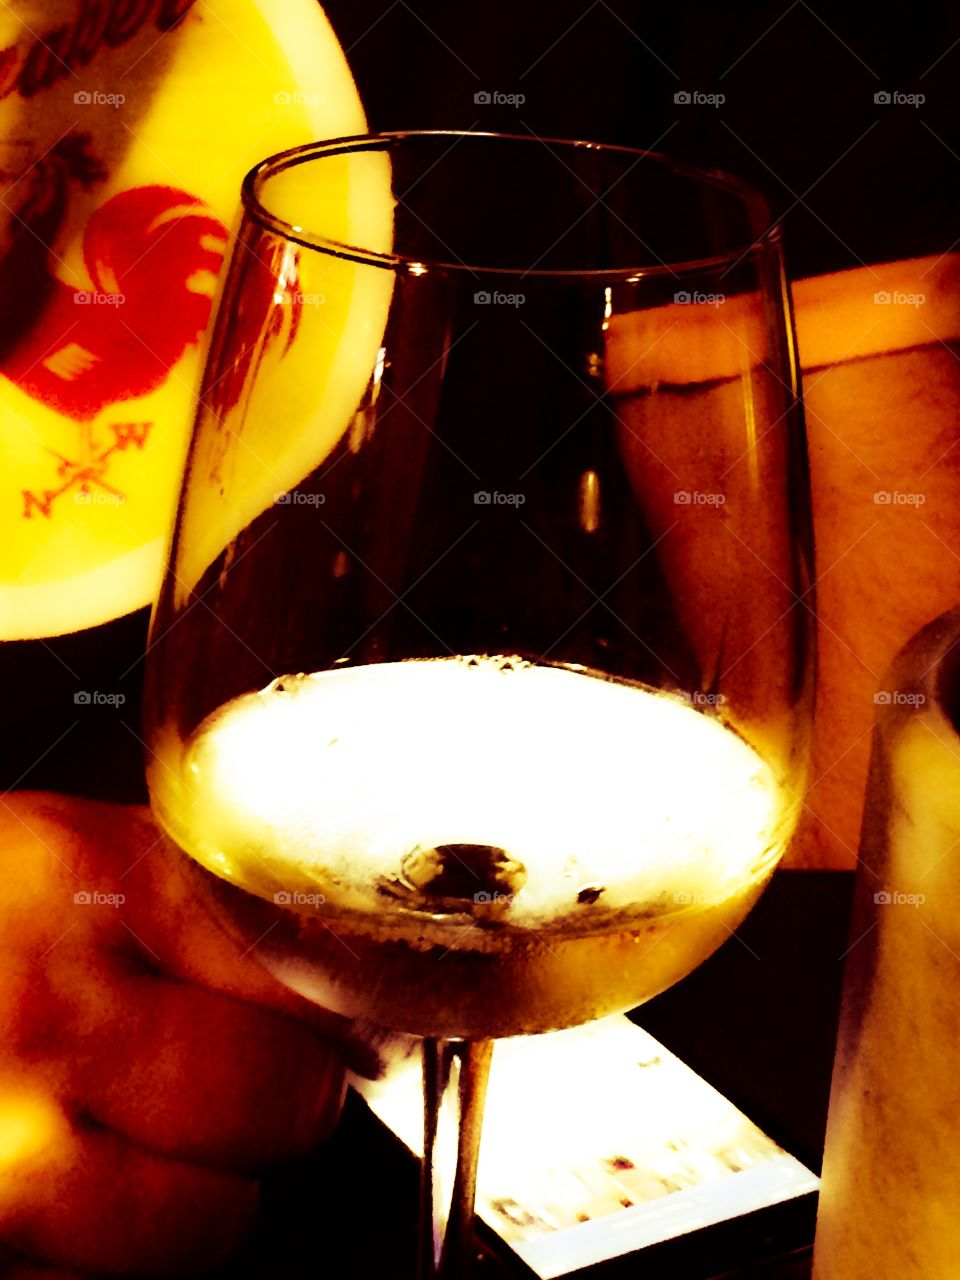 White Wine. An iPhone shines up through the wine in his glass